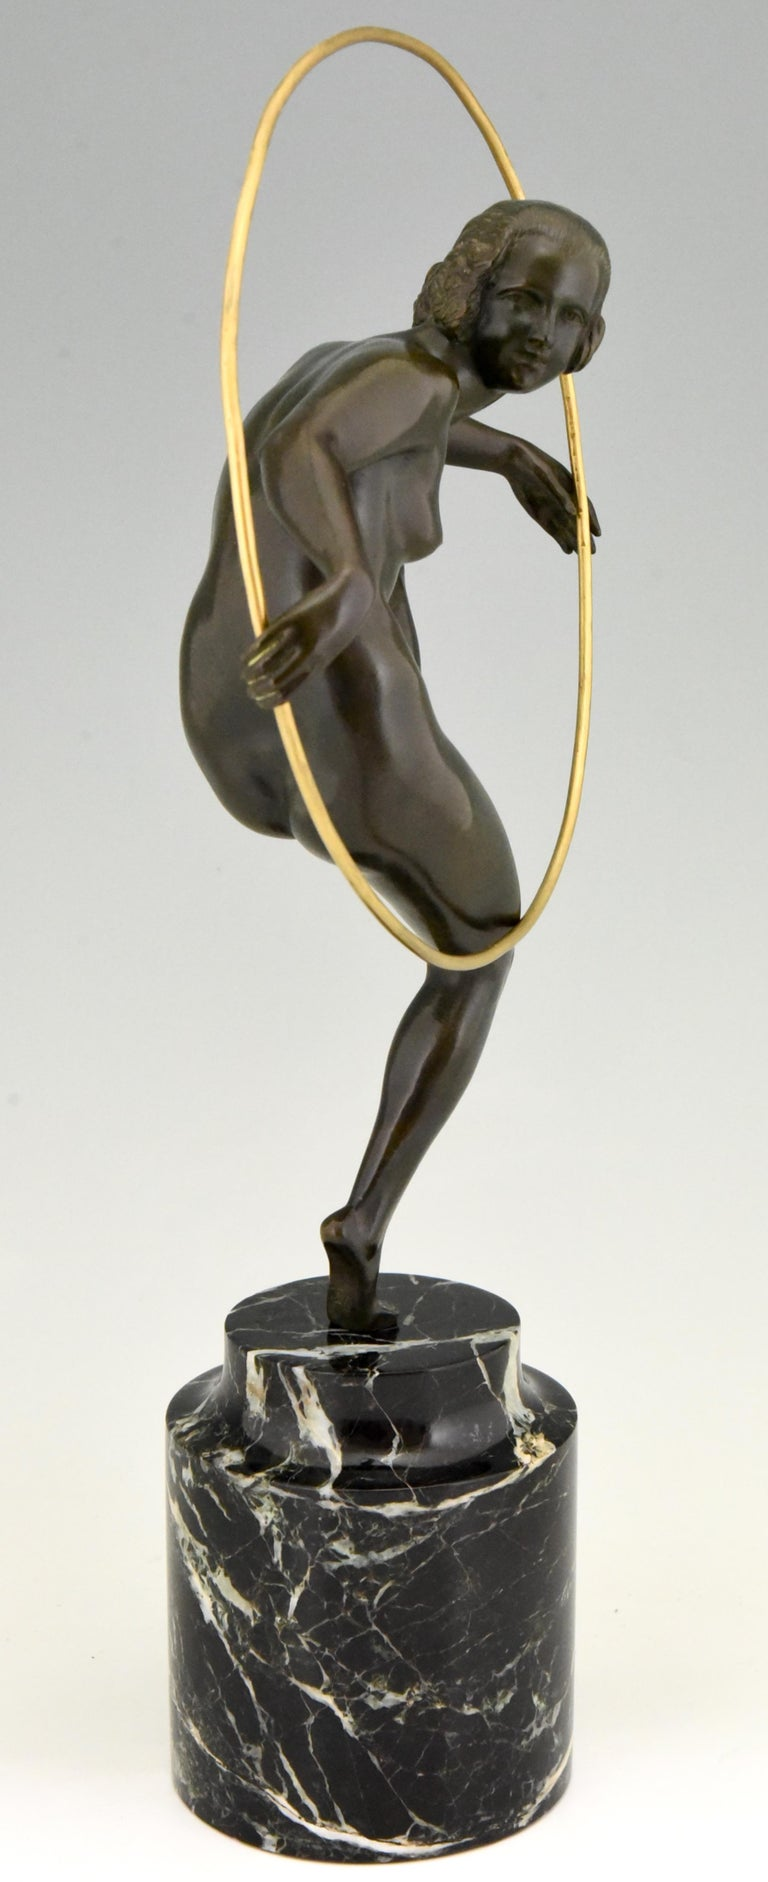 French Art Deco Bronze Nude Hoop Dancer Andre Marcel Bouraine, 1930, France For Sale